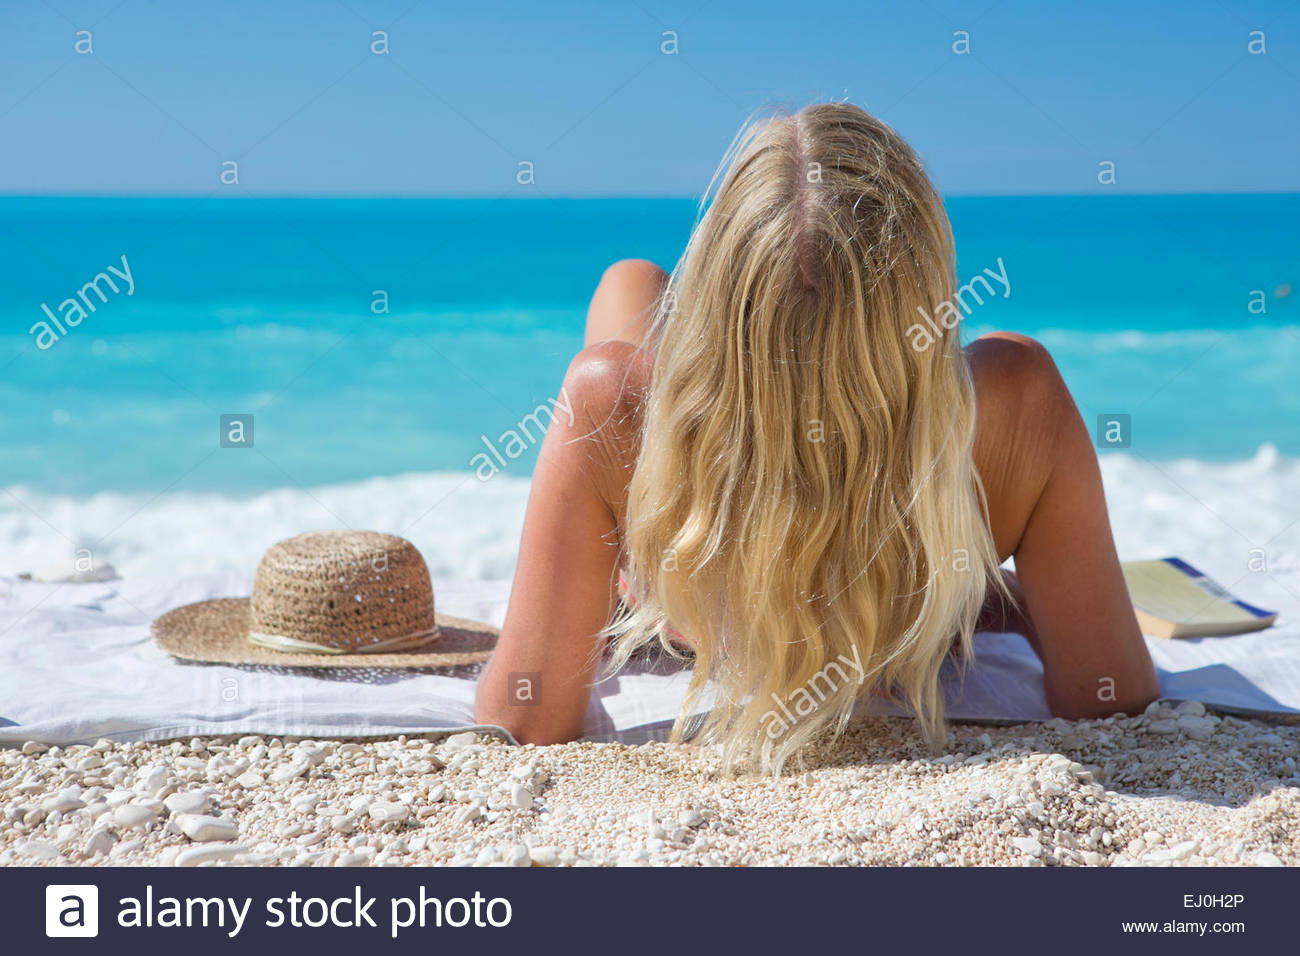 woman, looking out to sea, lying on towel on sunny beach - Stock Image